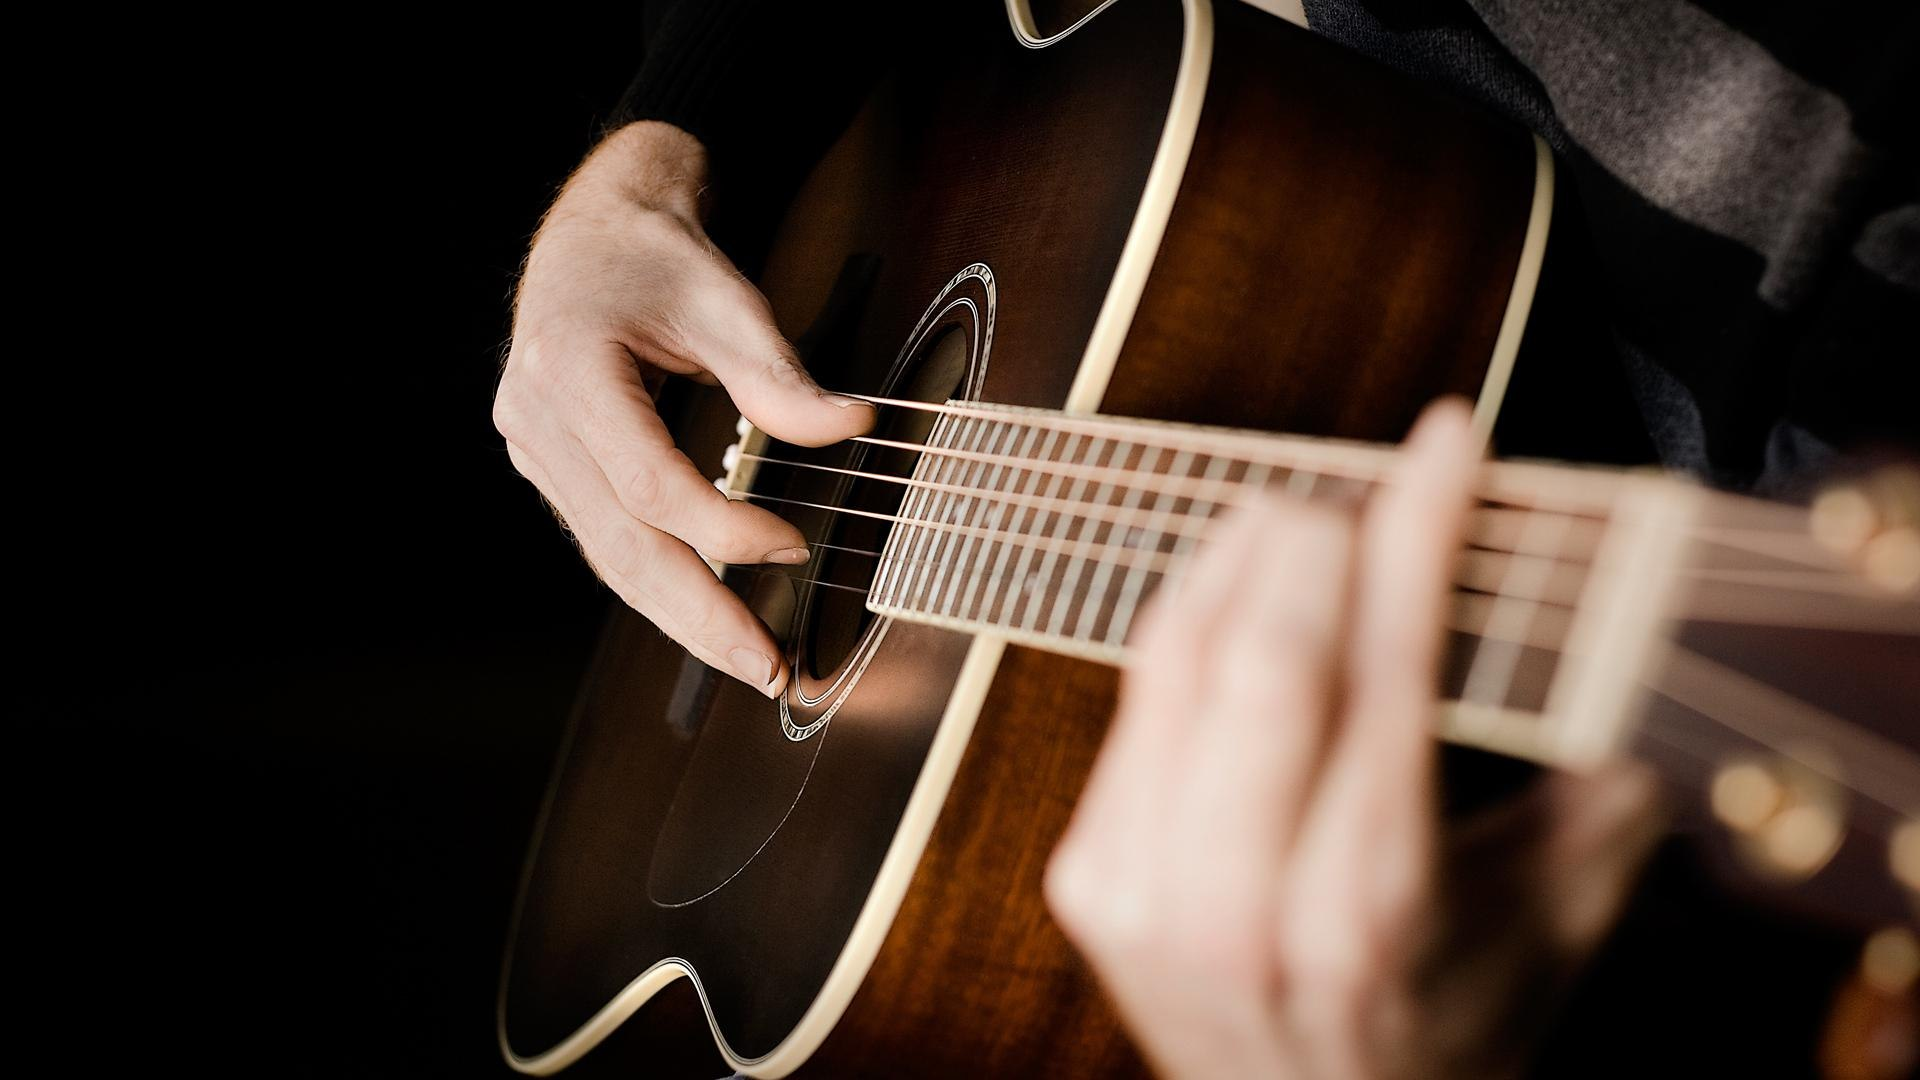 Acoustic Guitar Wallpapers Wallpaper High Definition High